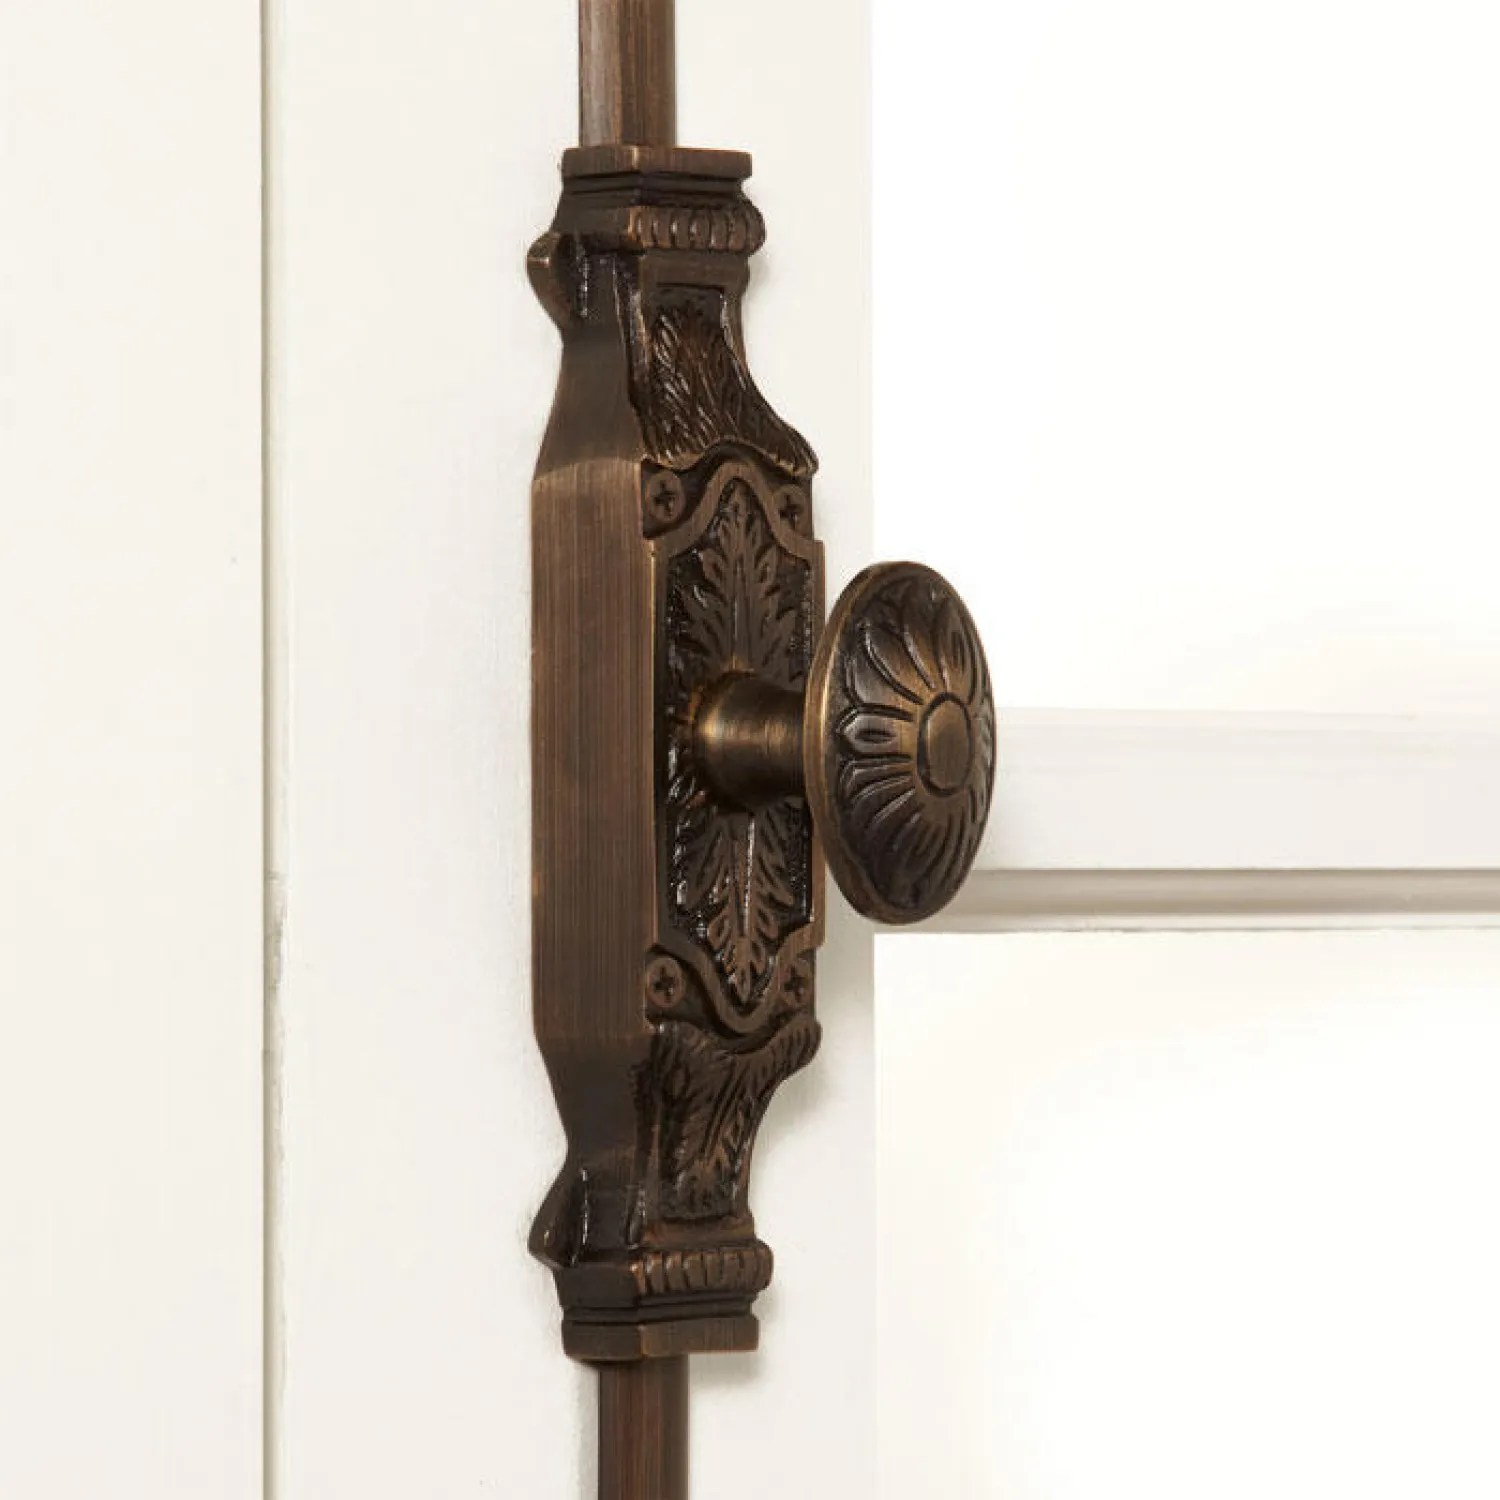 Corinthian Brass Window Cremone Bolt Hardware